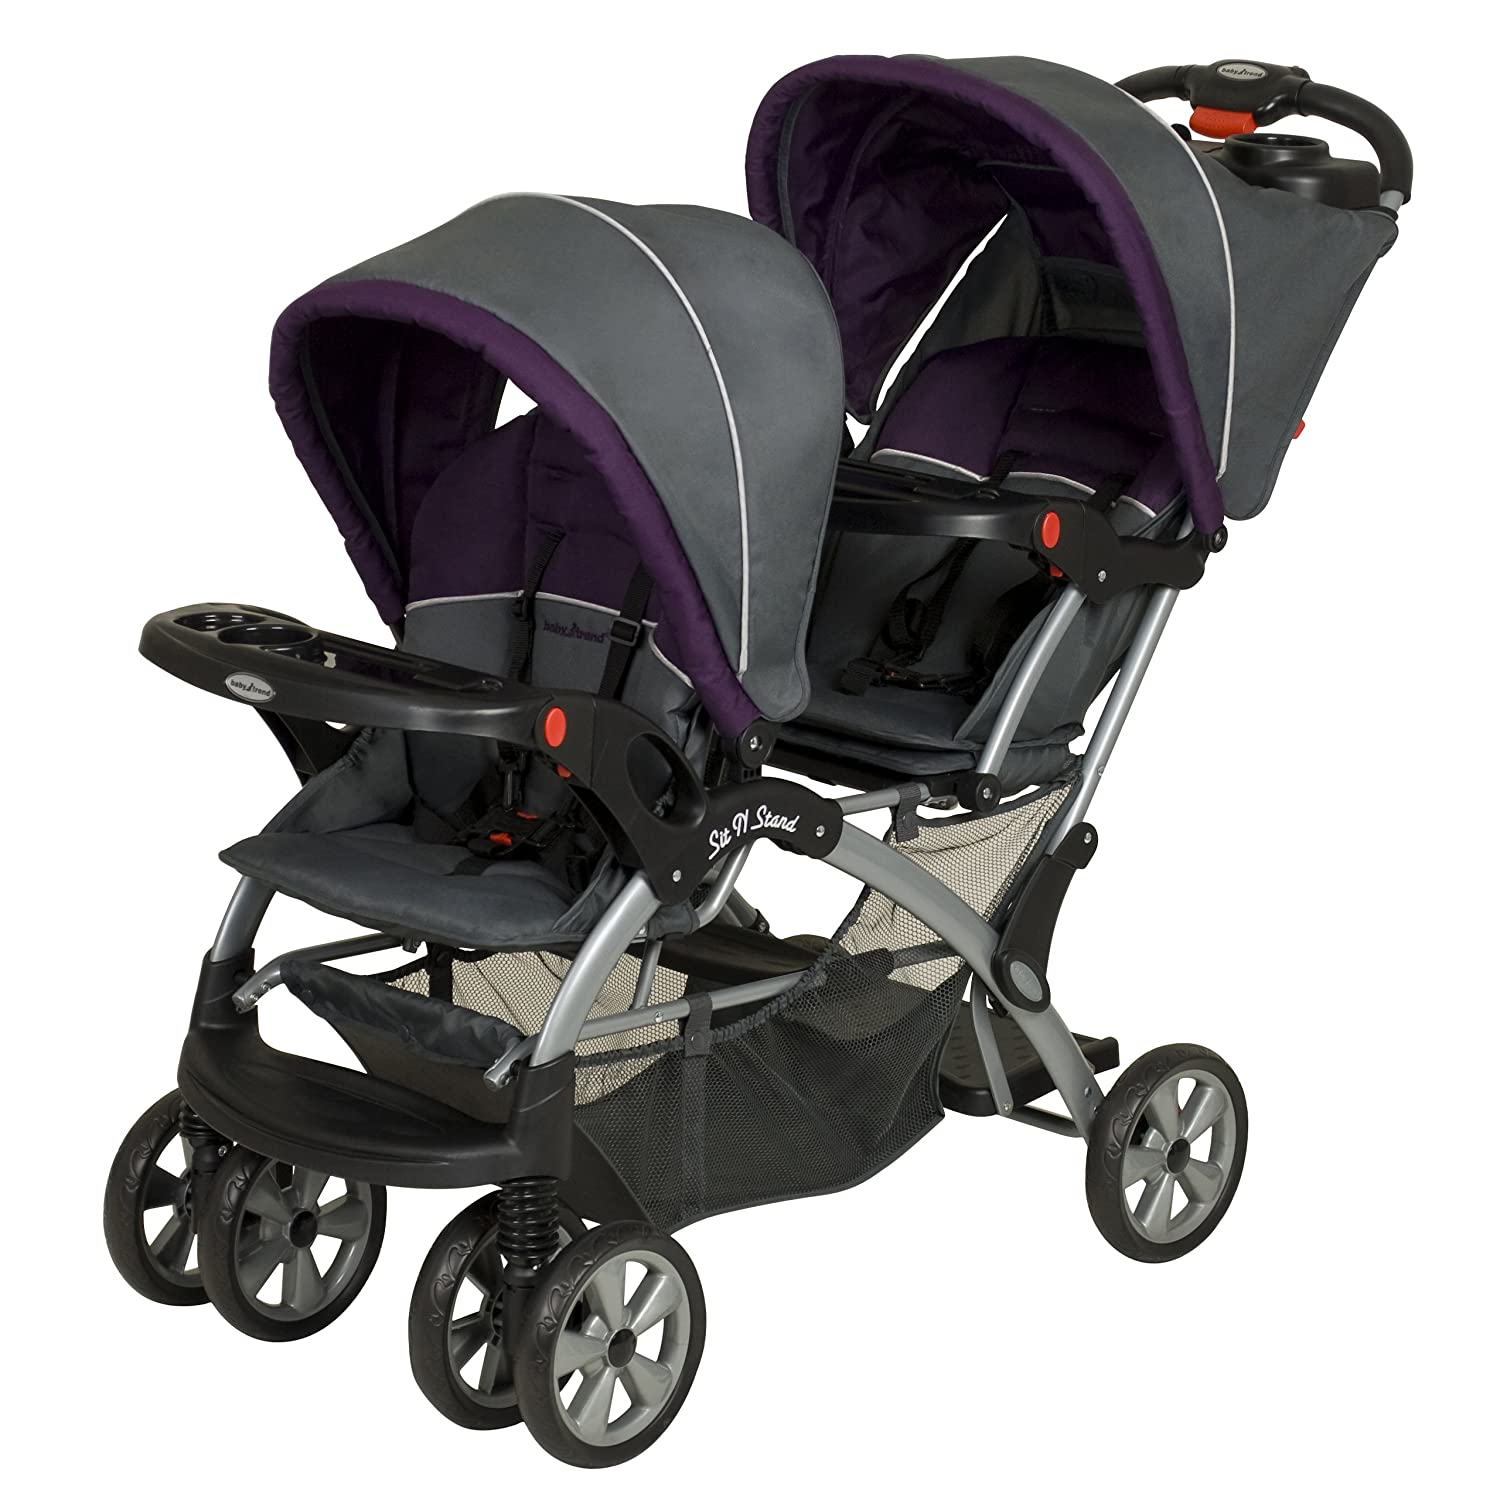 Best double stroller 2013 for your twins